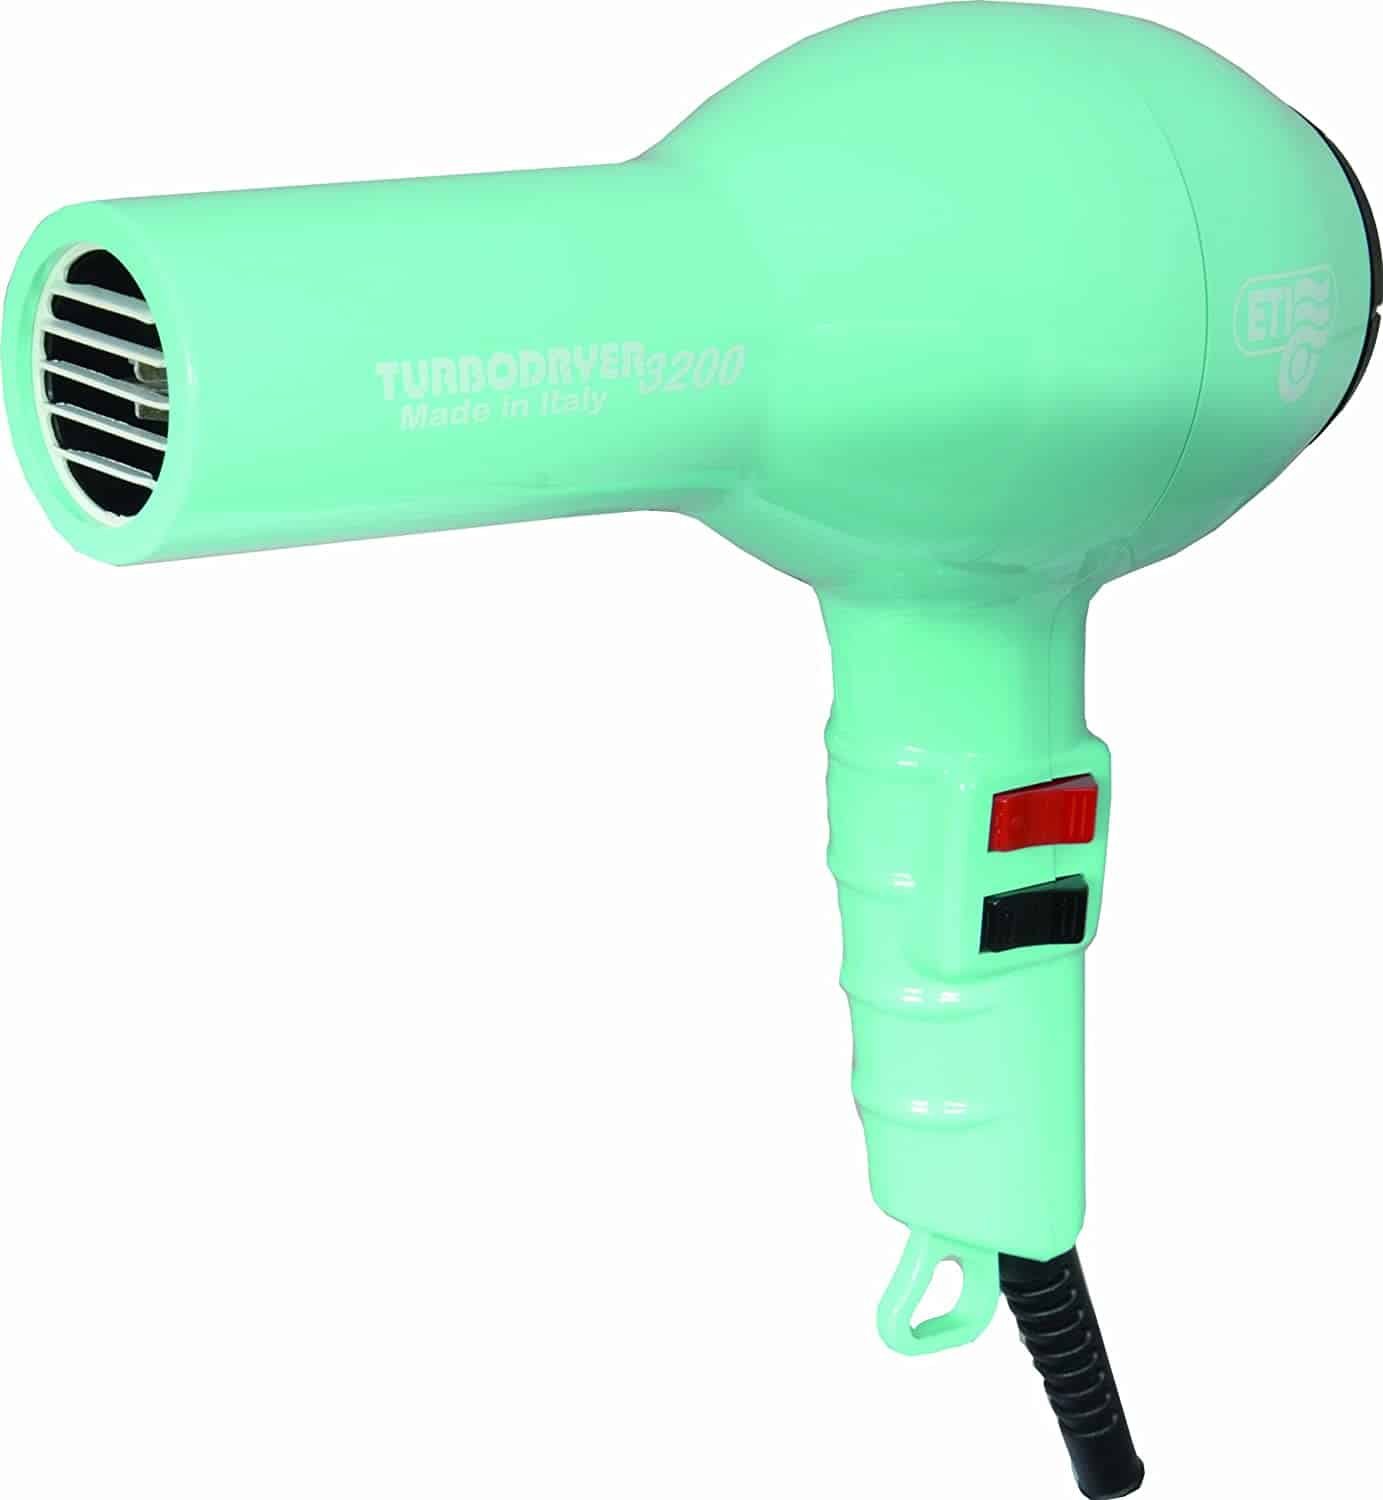 ETI Turbo salon professional aqua hairdryer